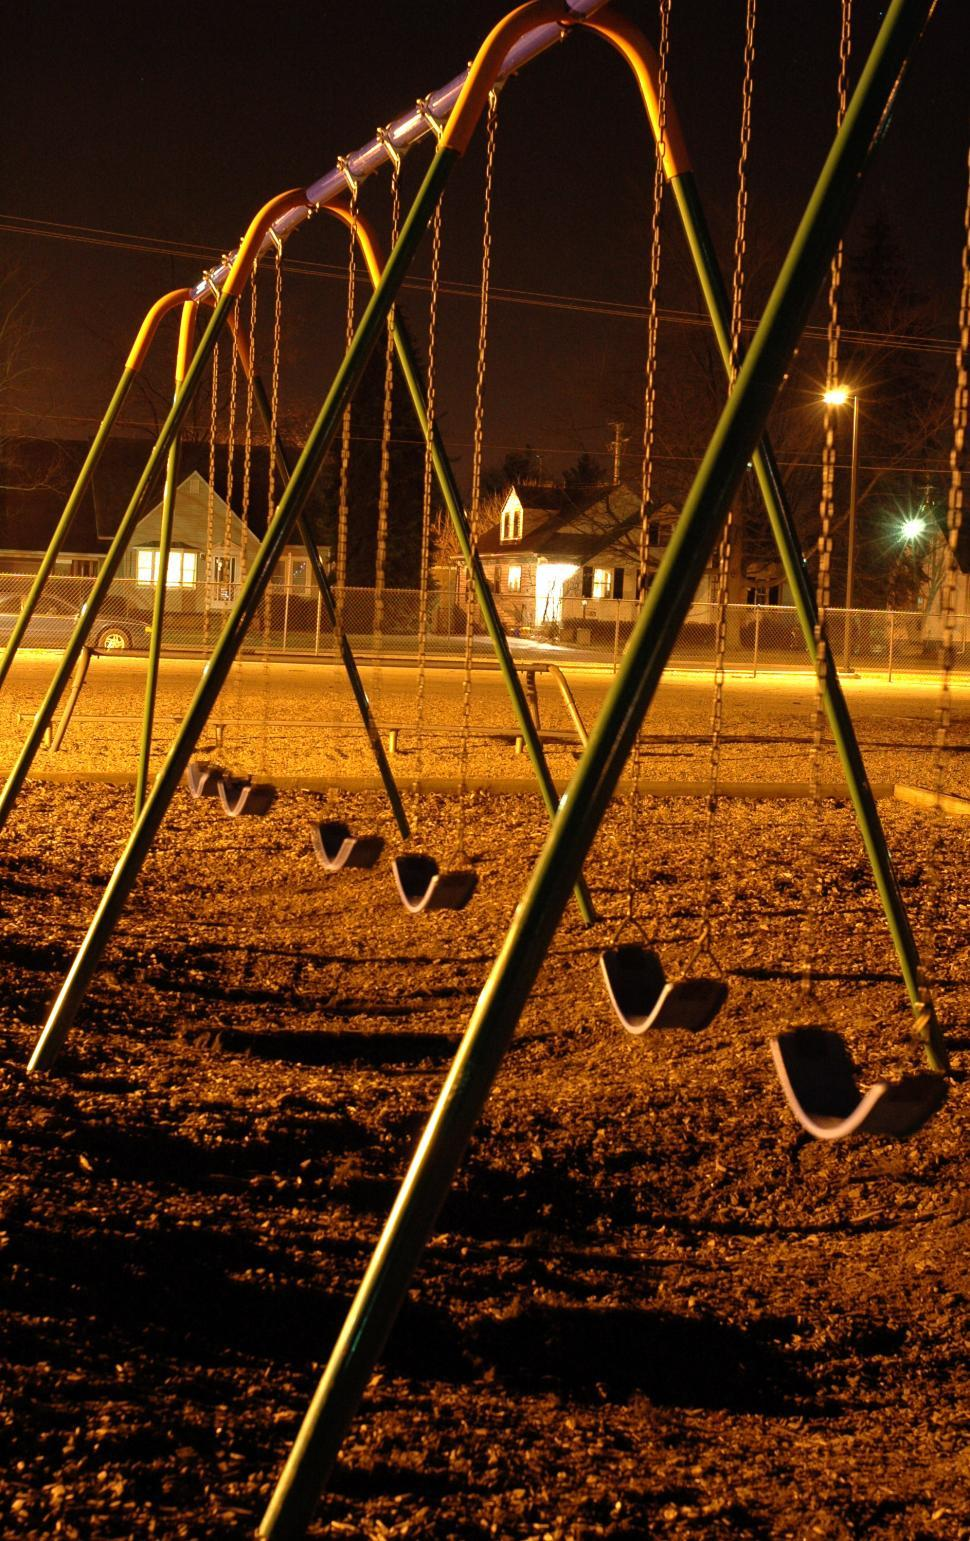 Download Free Stock HD Photo of Swings at night Online